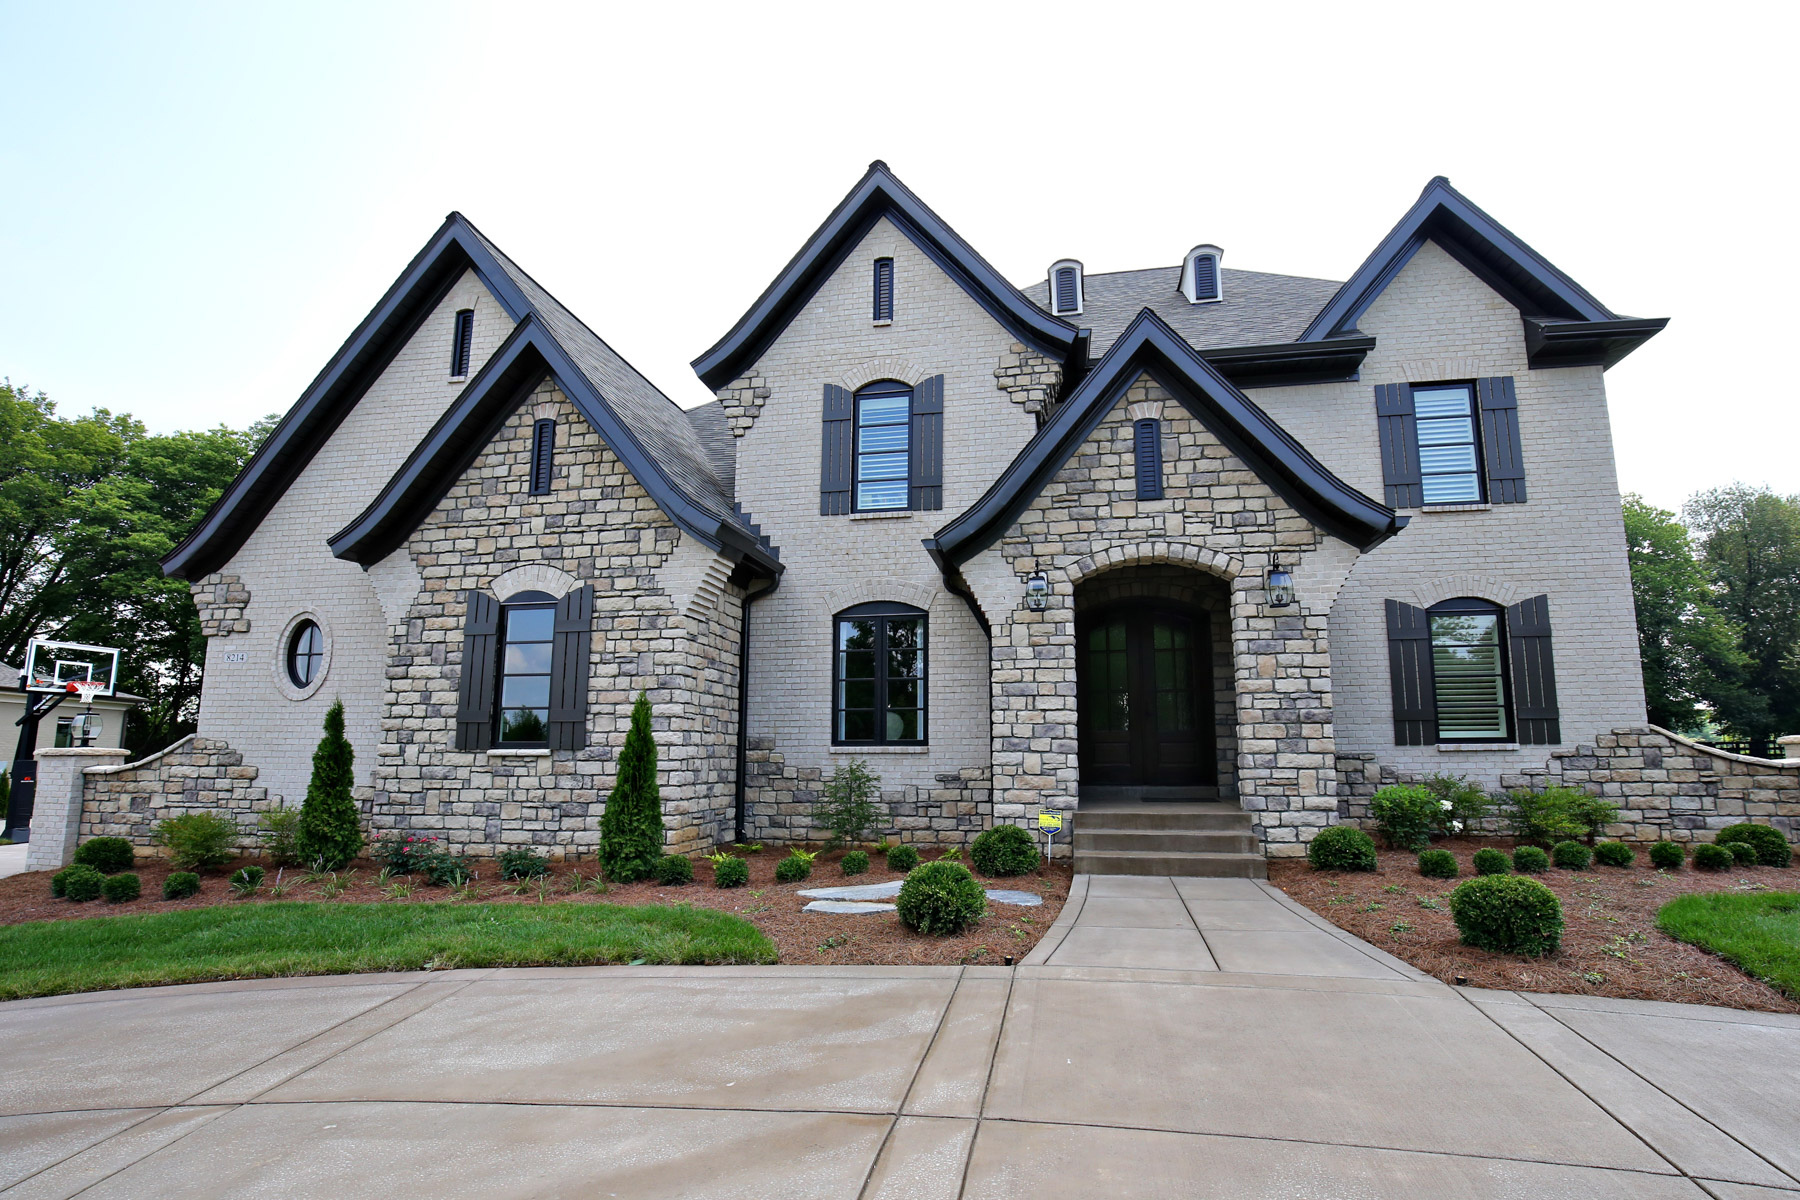 Single Family Home for Sale at 9608 W. View Court (Proposed Build) Crestwood, Kentucky 40014 United States